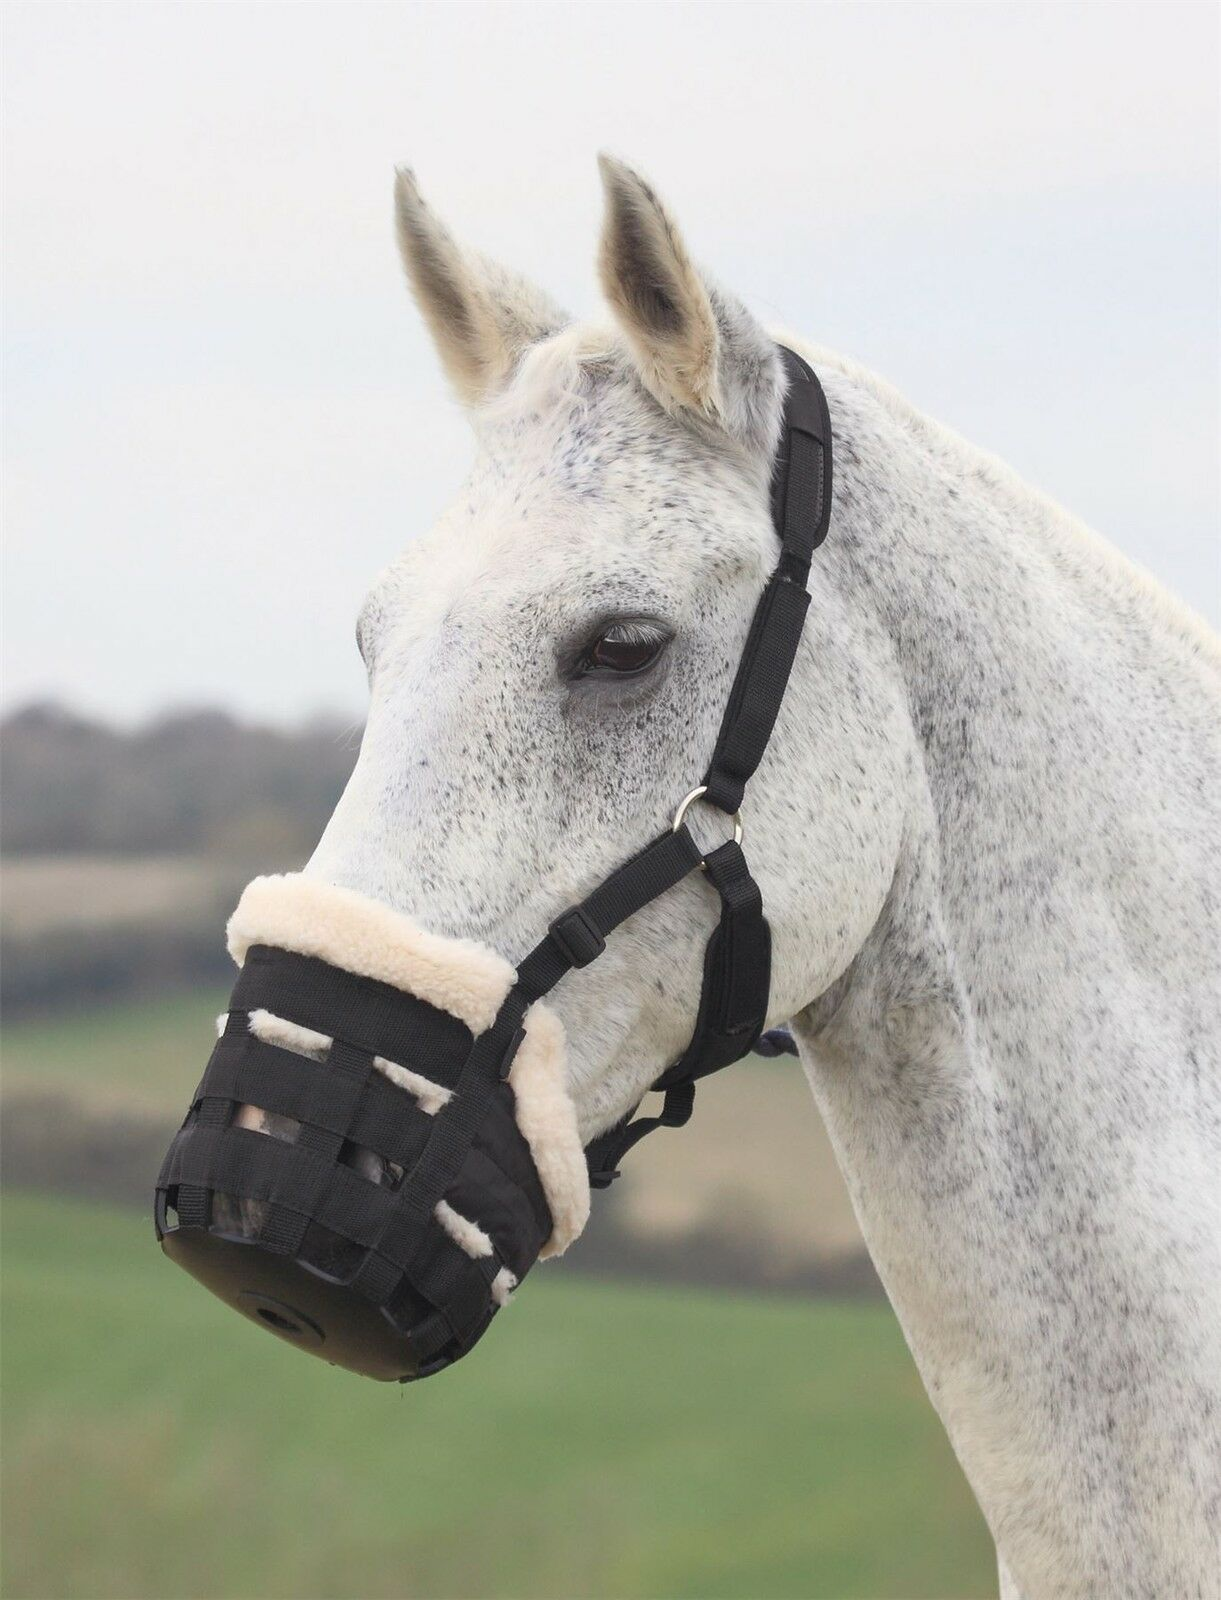 DELUXE  COMFORT GRAZING MUZZLE HORSE EQUESTRIAN REDUCE FEEDING GRAZING  sale online discount low price